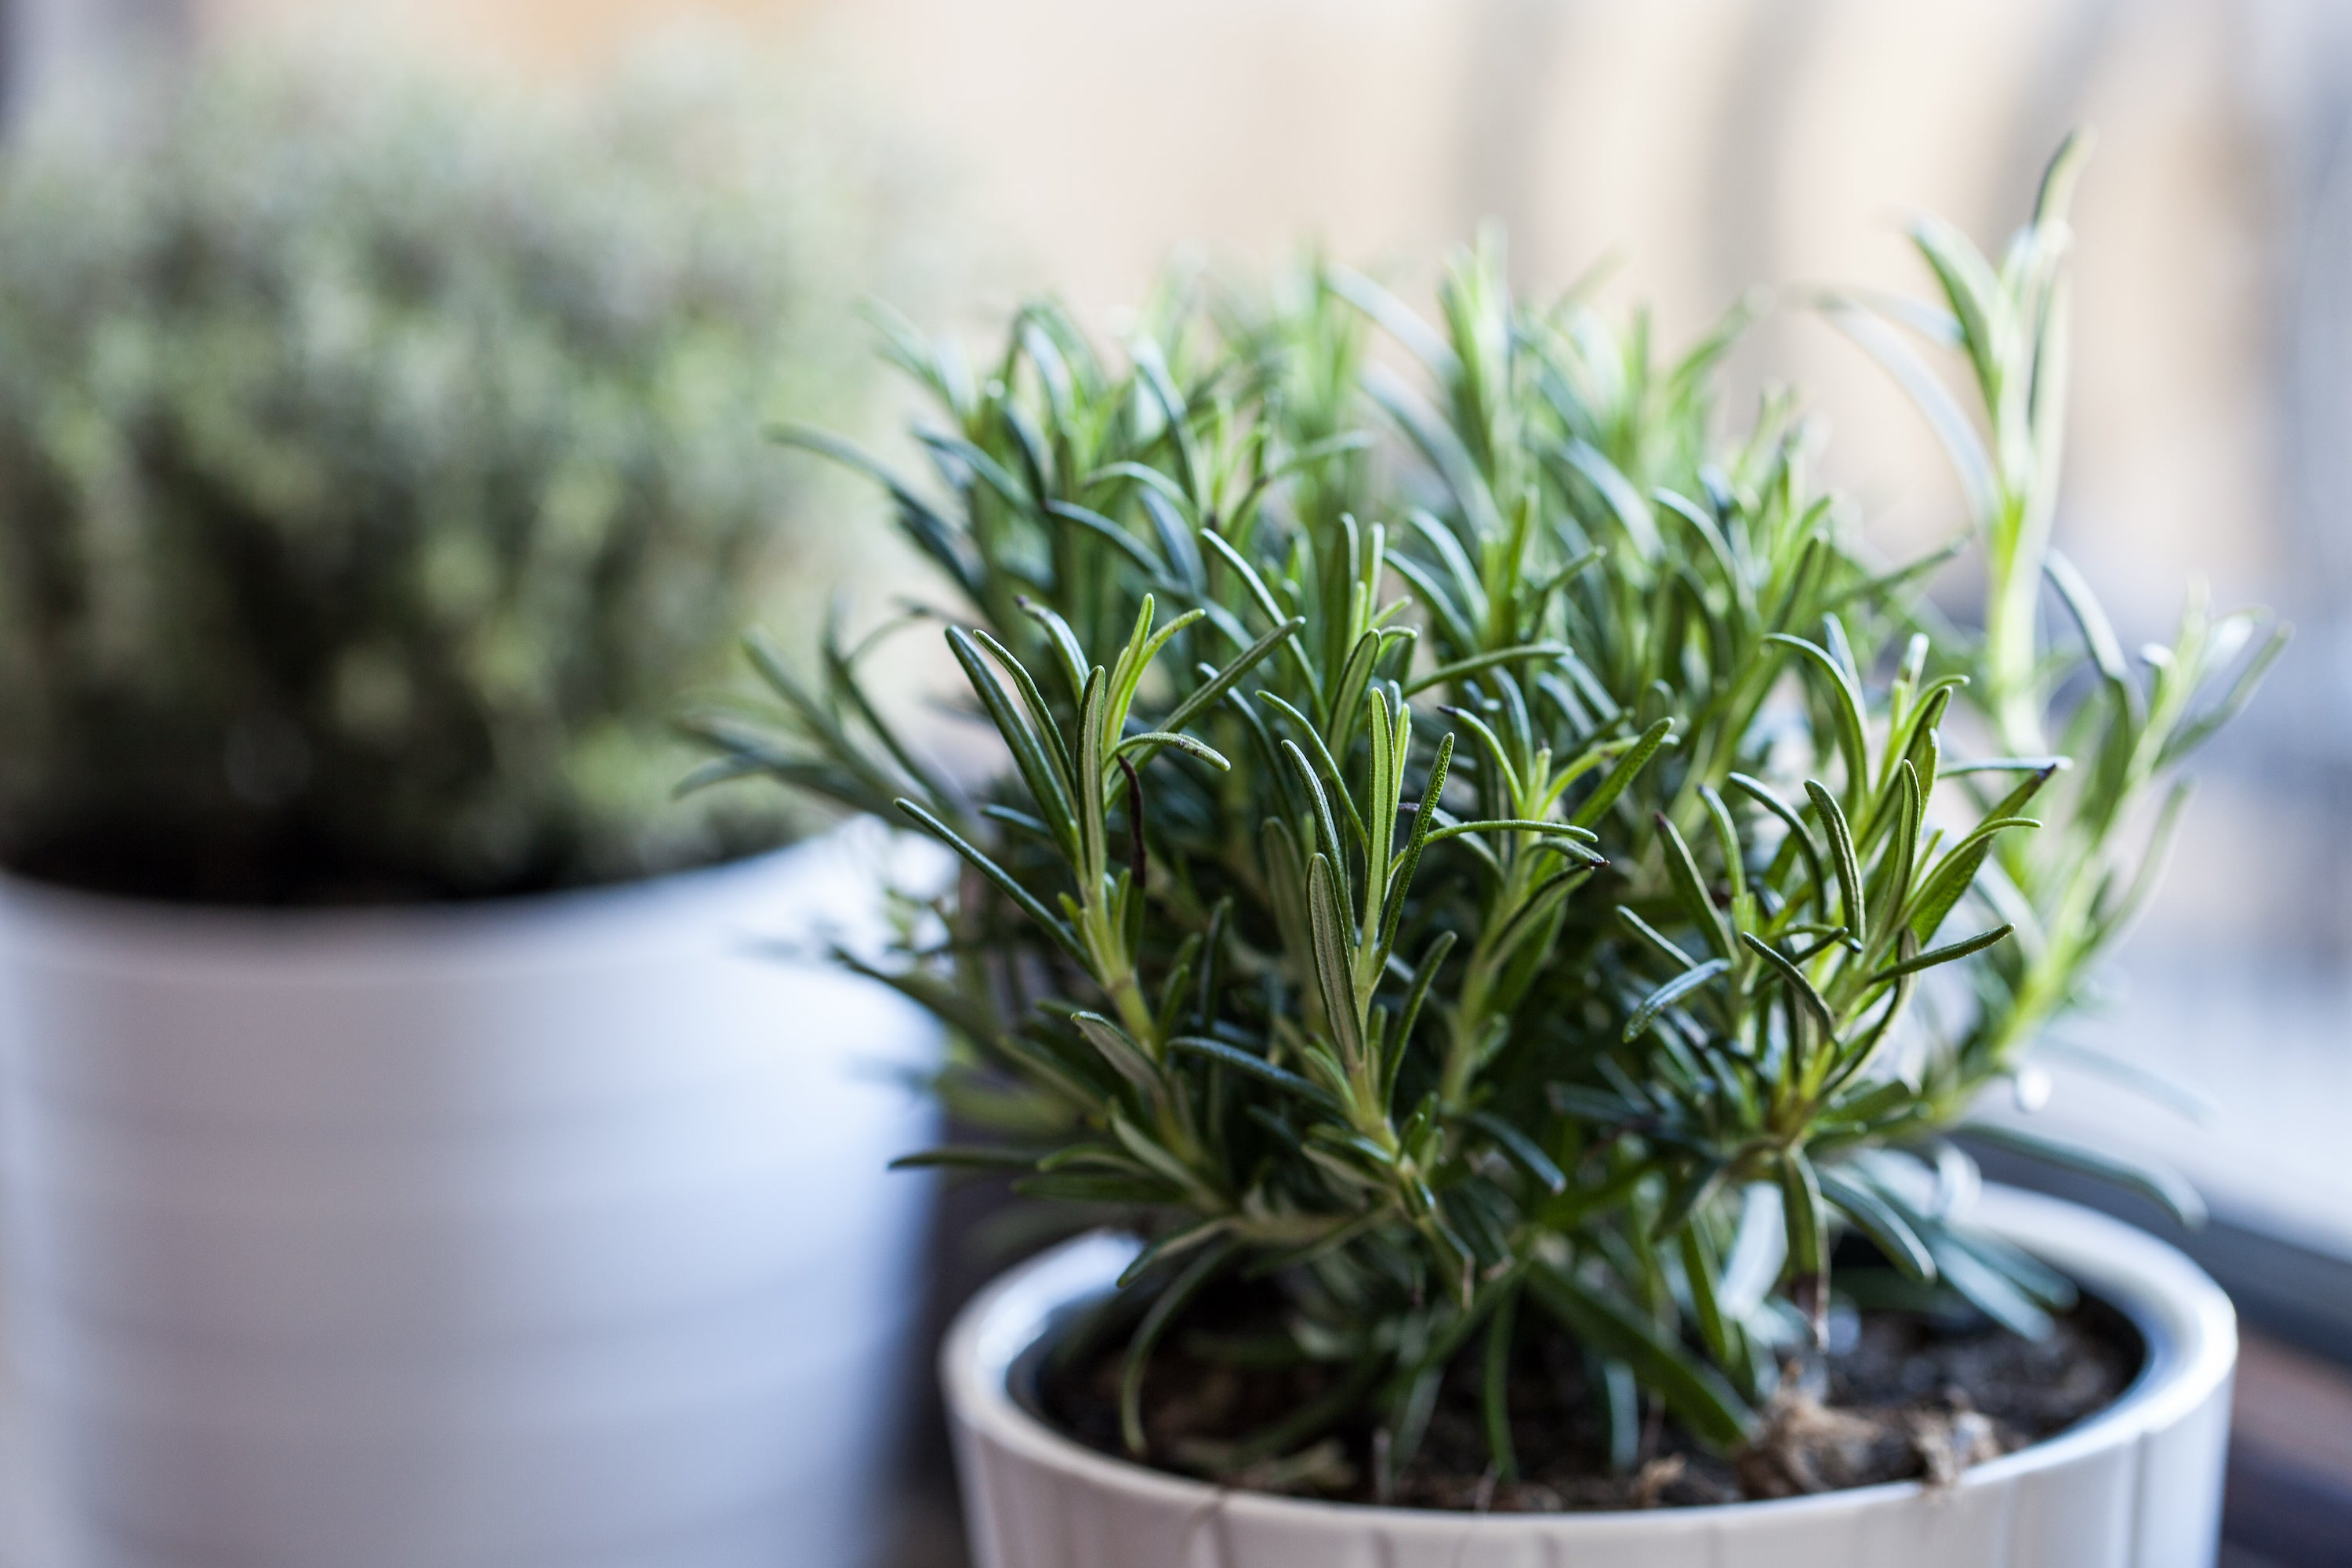 rosemary growing in small pot